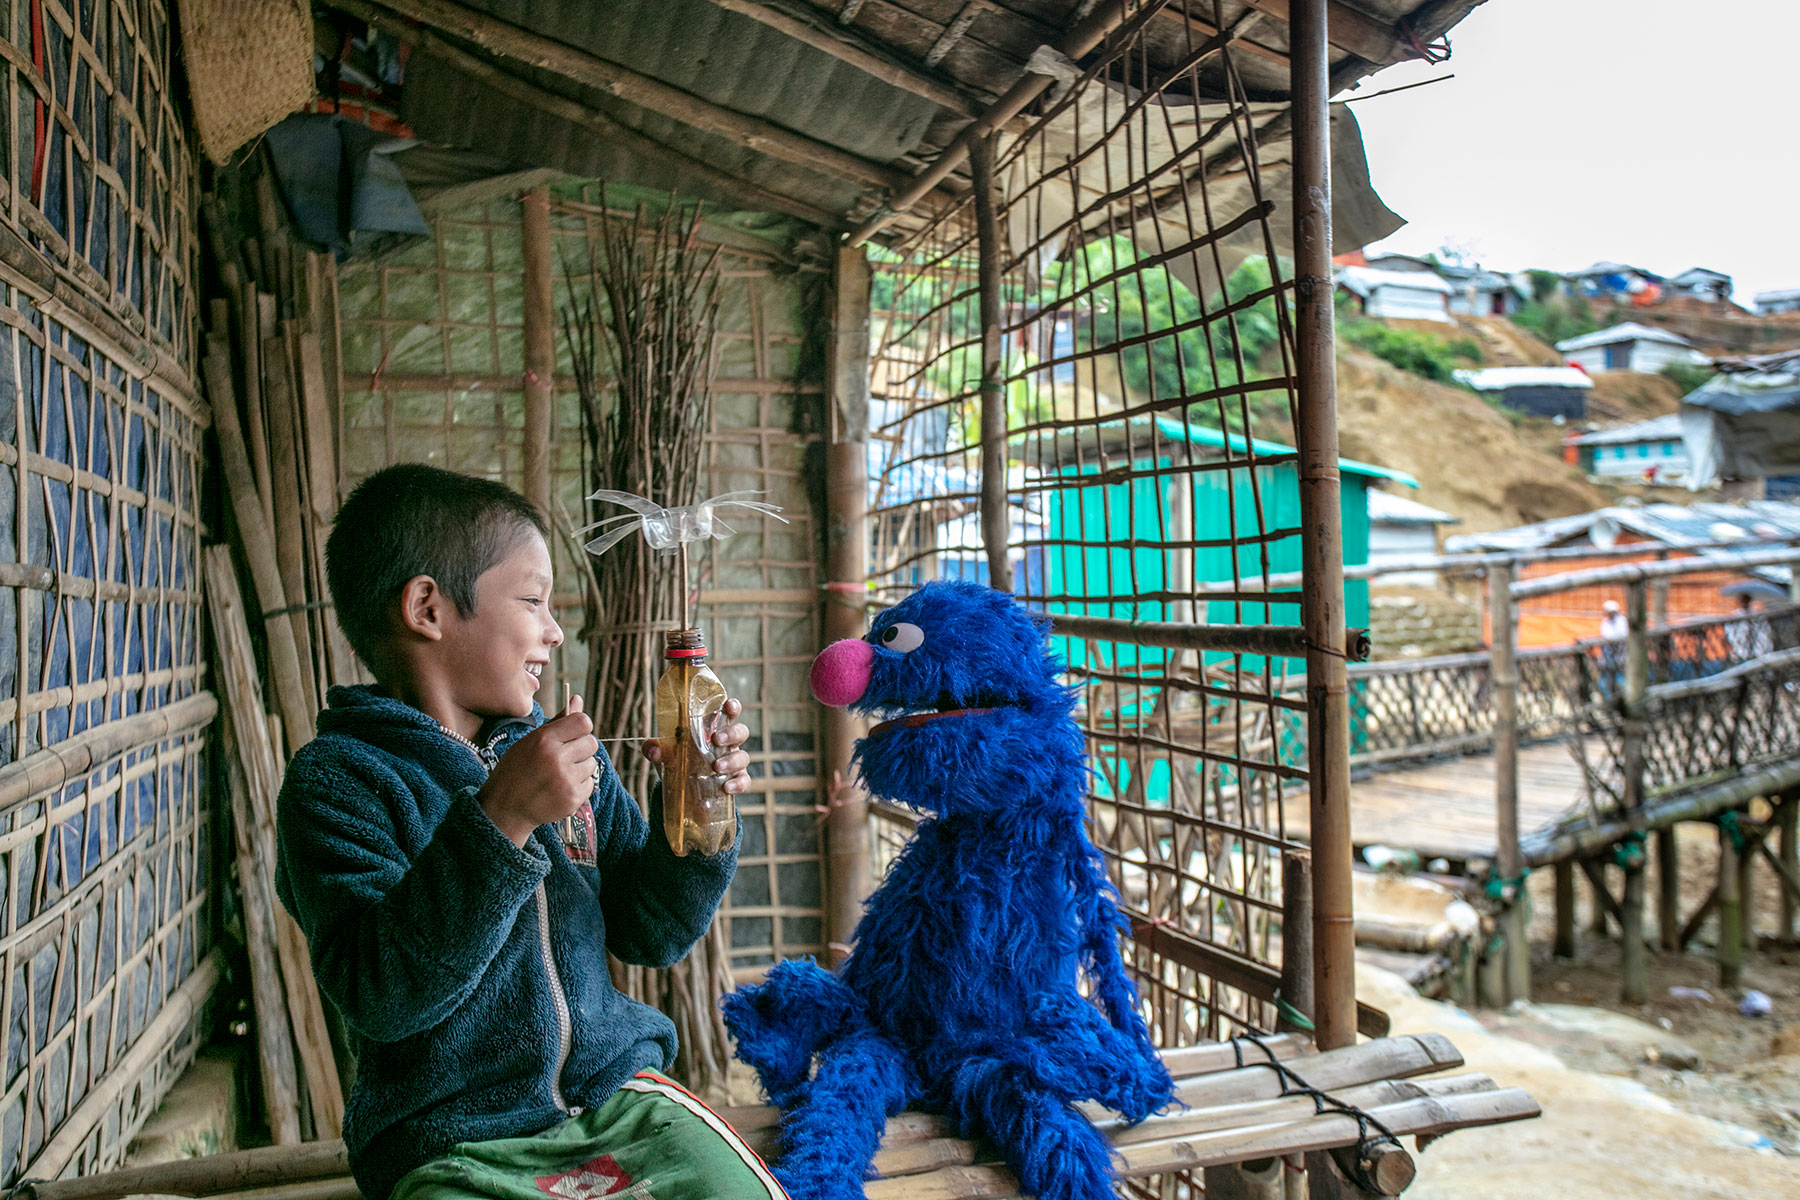 A Rohingya child plays with a muppet. Photo by Ryan Donnell for Sesame Workshop.